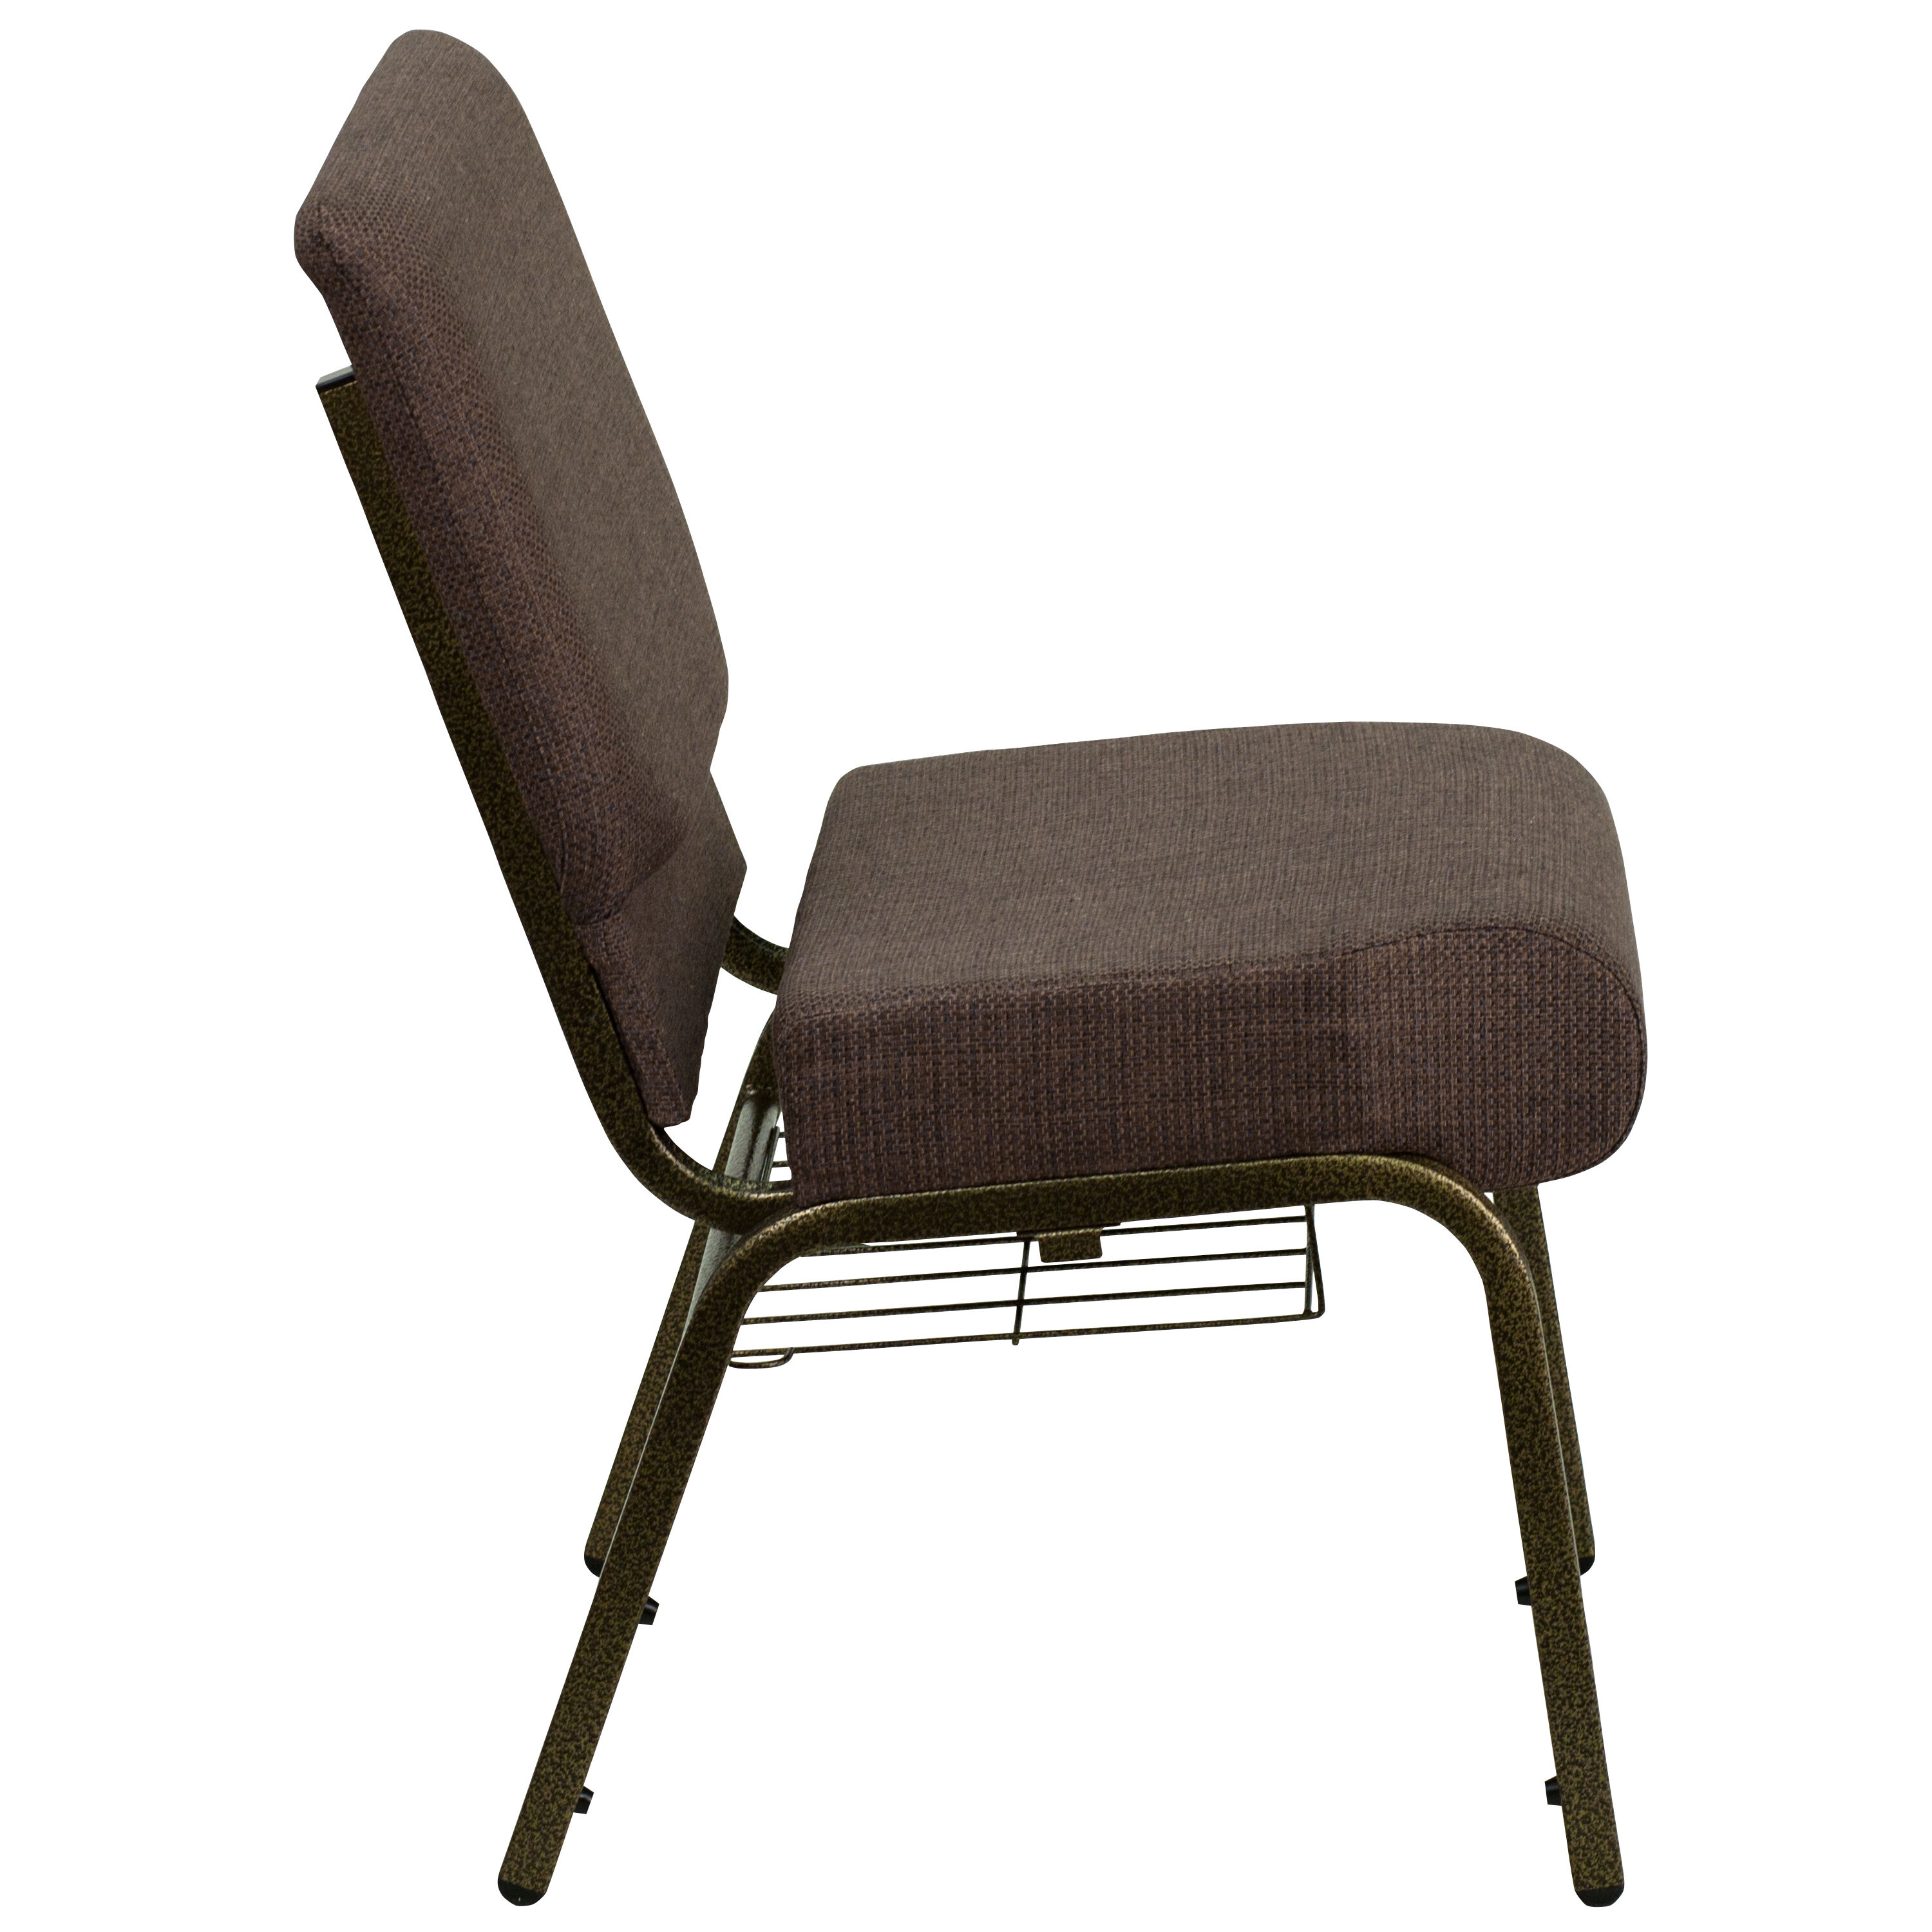 chairs 4 less malibu pilates chair assembly instructions flash furniture fd ch0221 gv s0819 bas gg